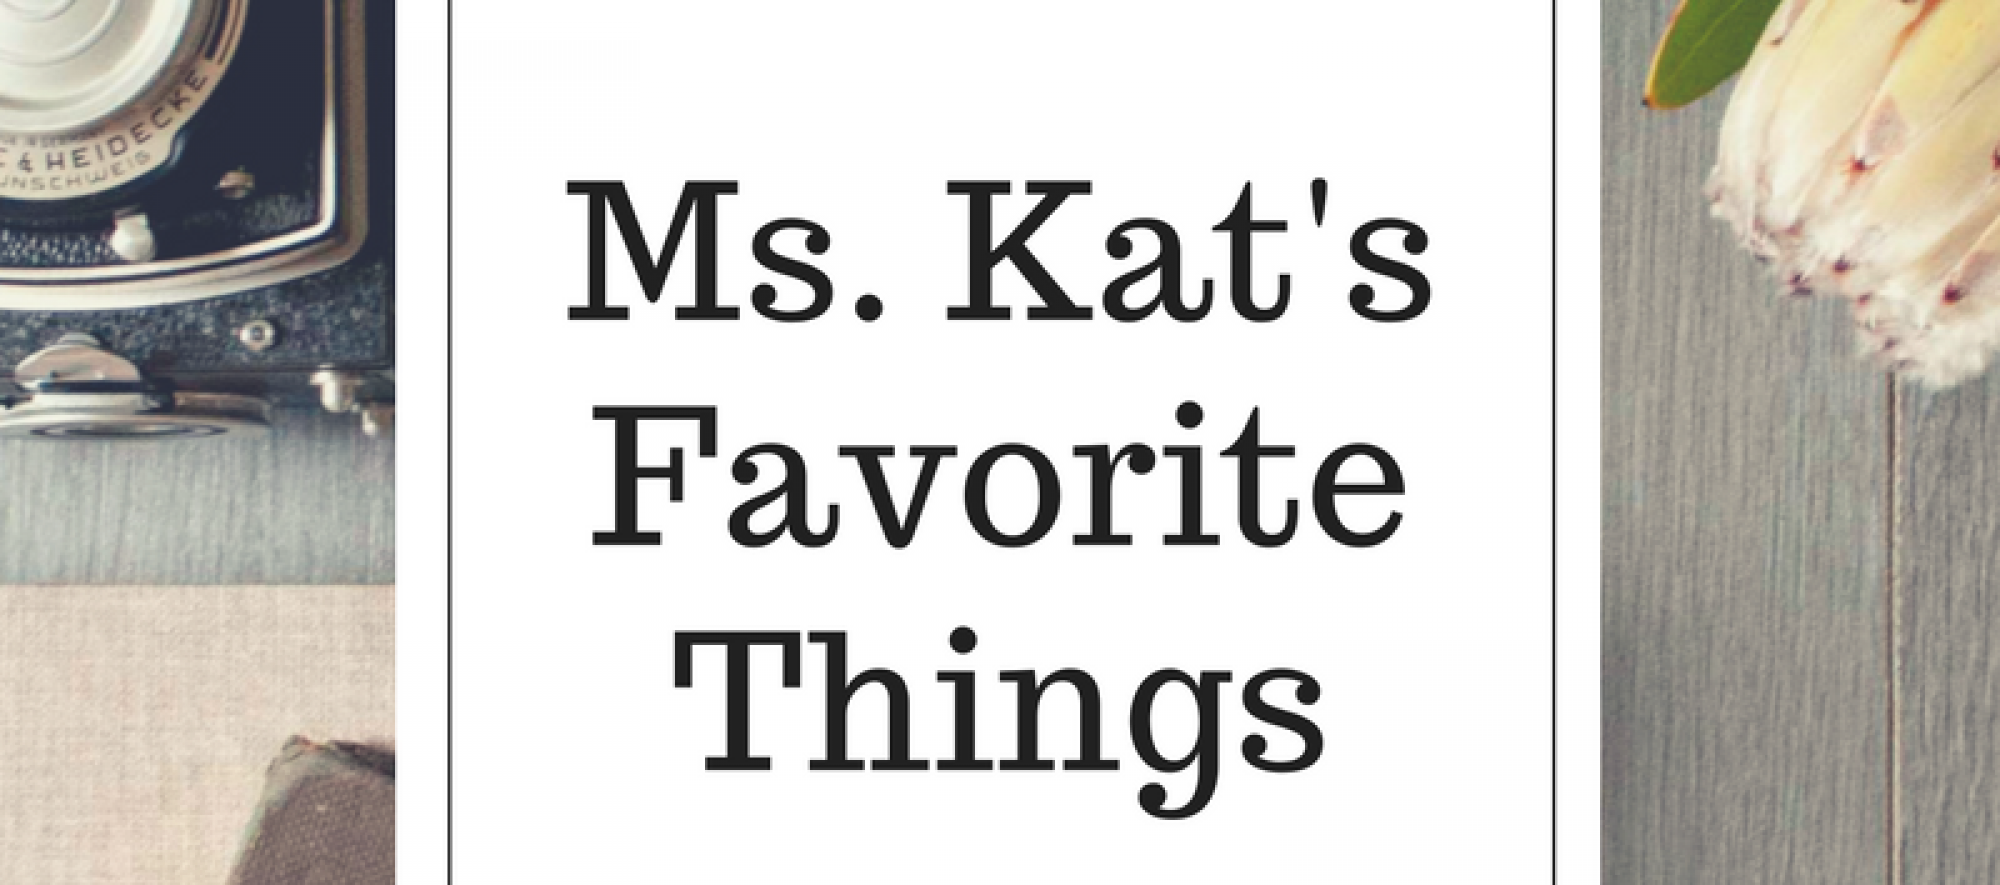 Ms. Kat's Favorite Things